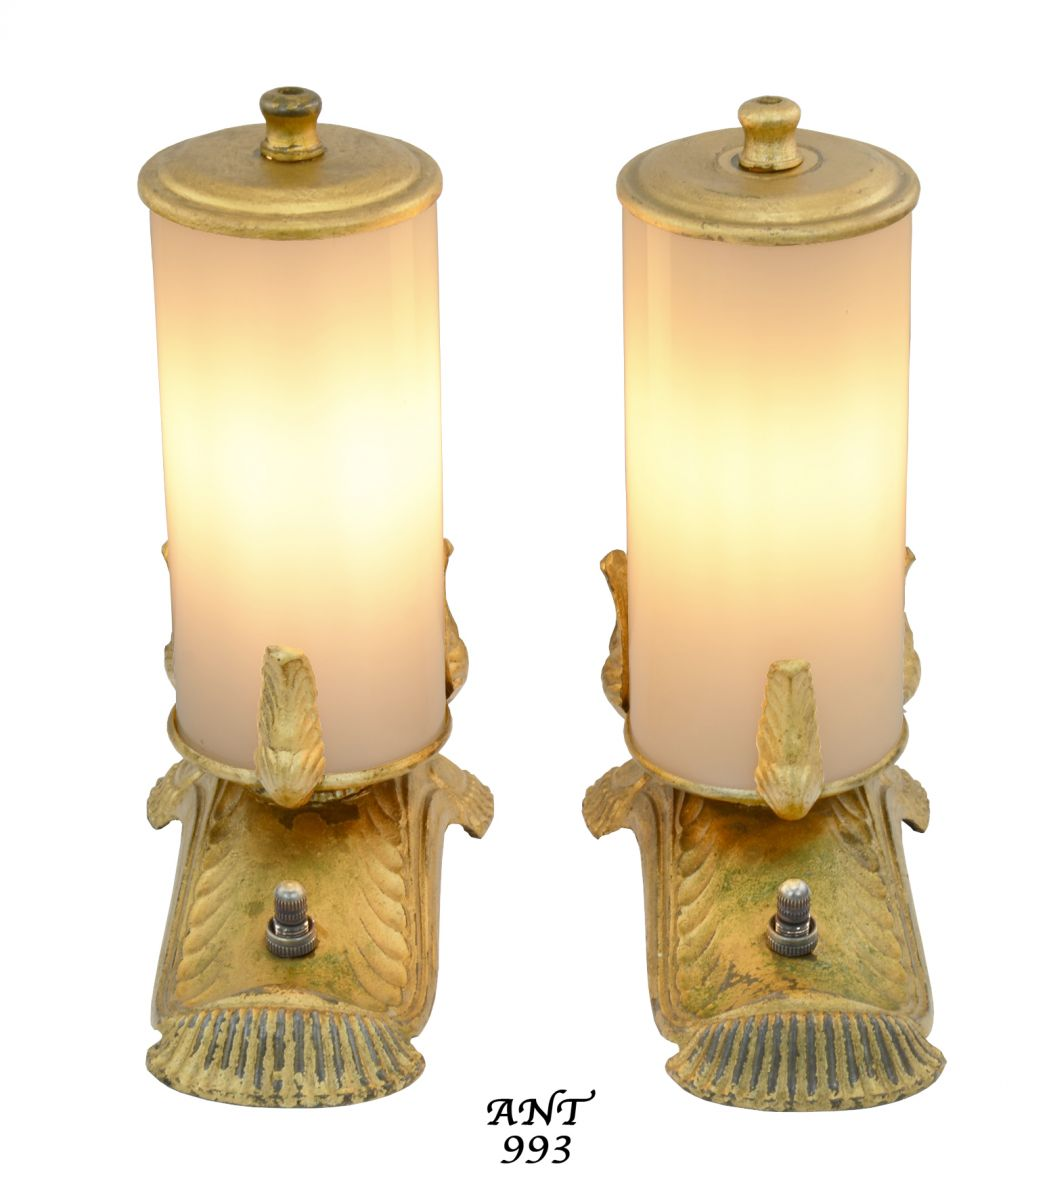 vintage hardware lighting unusual edwardian style small accent ant table lights alternate view description mirrored console with drawers led for home white wood nightstand end